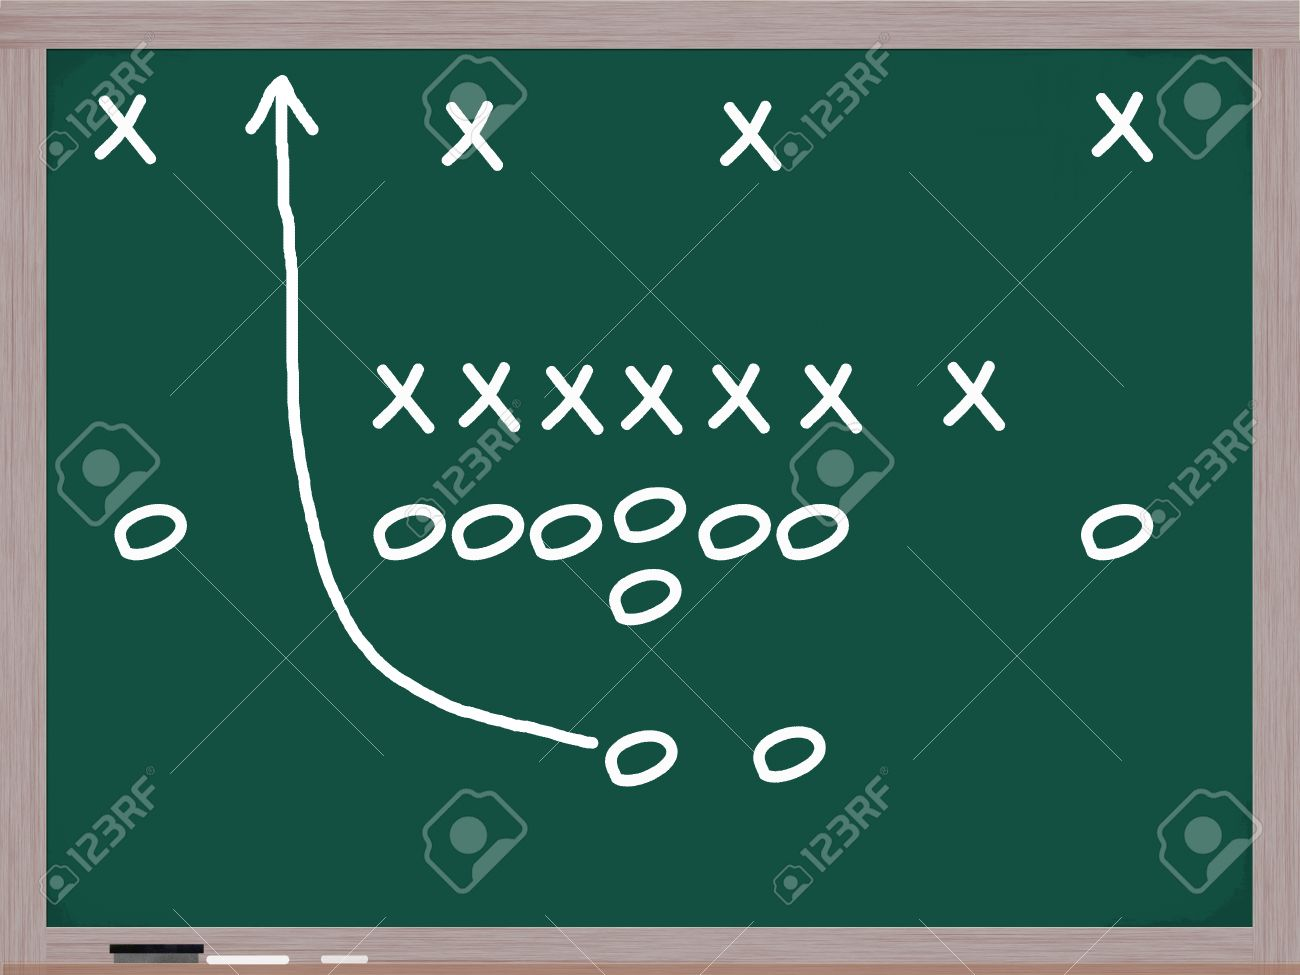 Football Play On A Chalkboard With Diagrams Of Xs And Os To Denote Players Stock